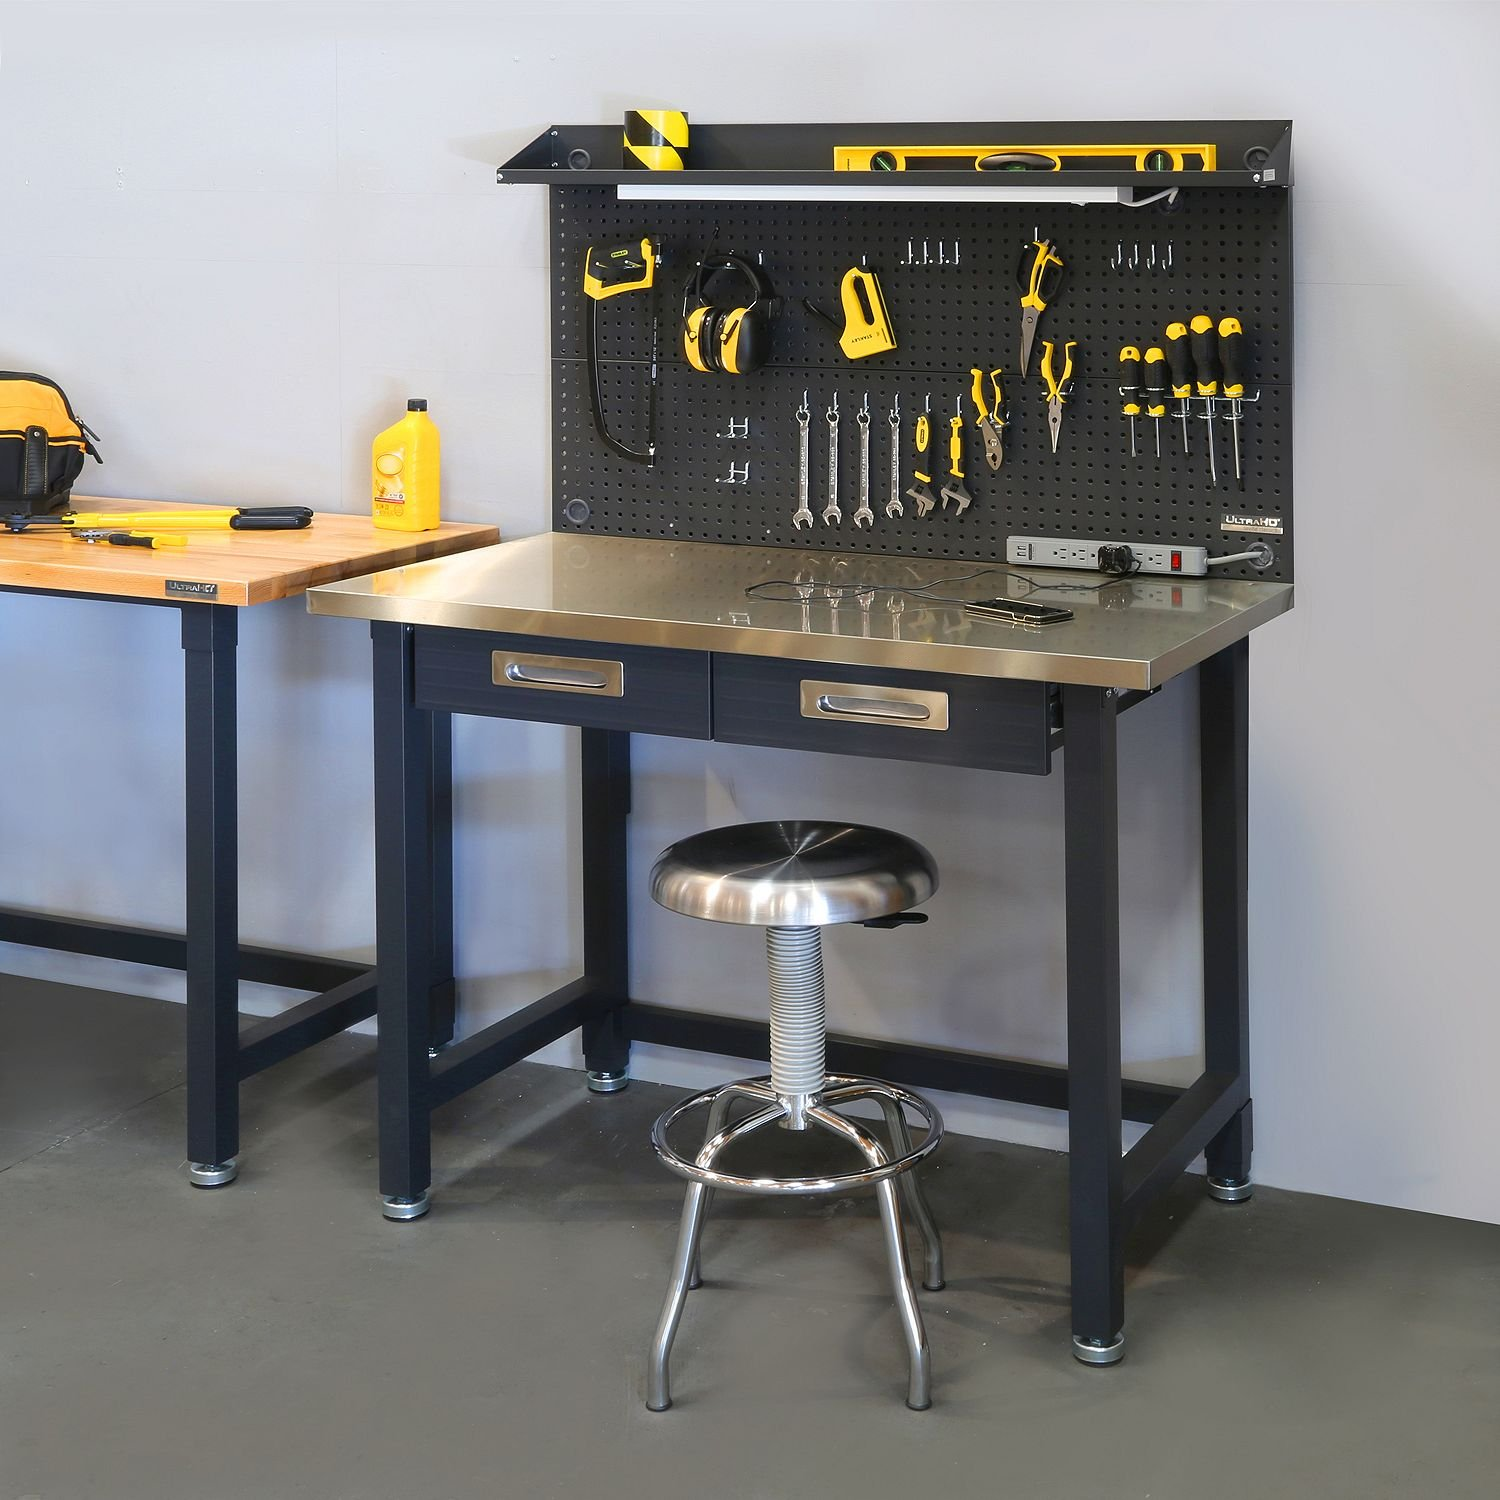 Seville Classics UltraHD Lighted Stainless Steel Top Workbench